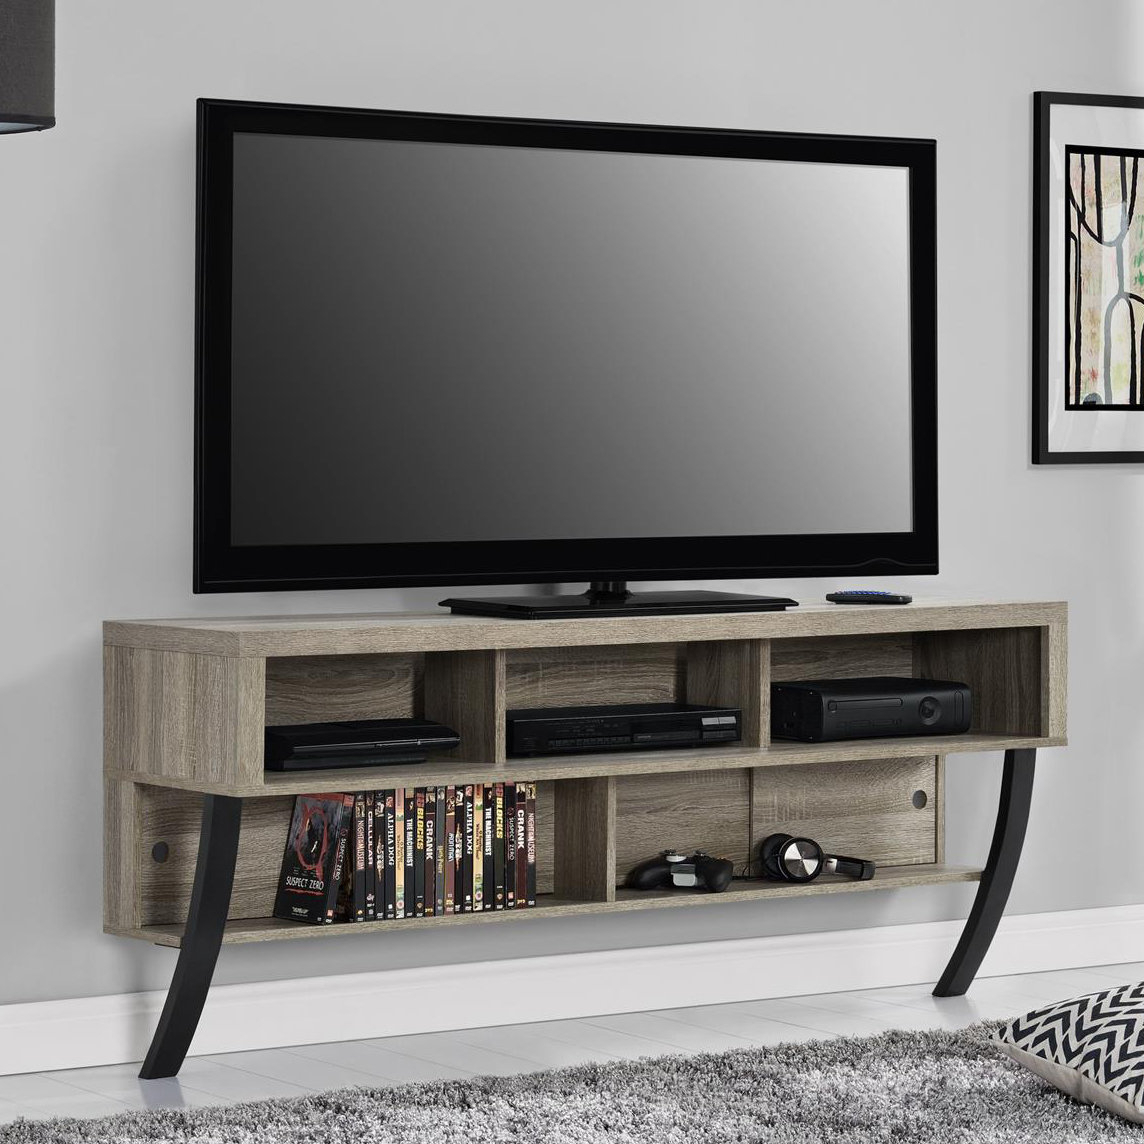 Wrought Studio Stringer Tv Stand For Tvs Up To 65"